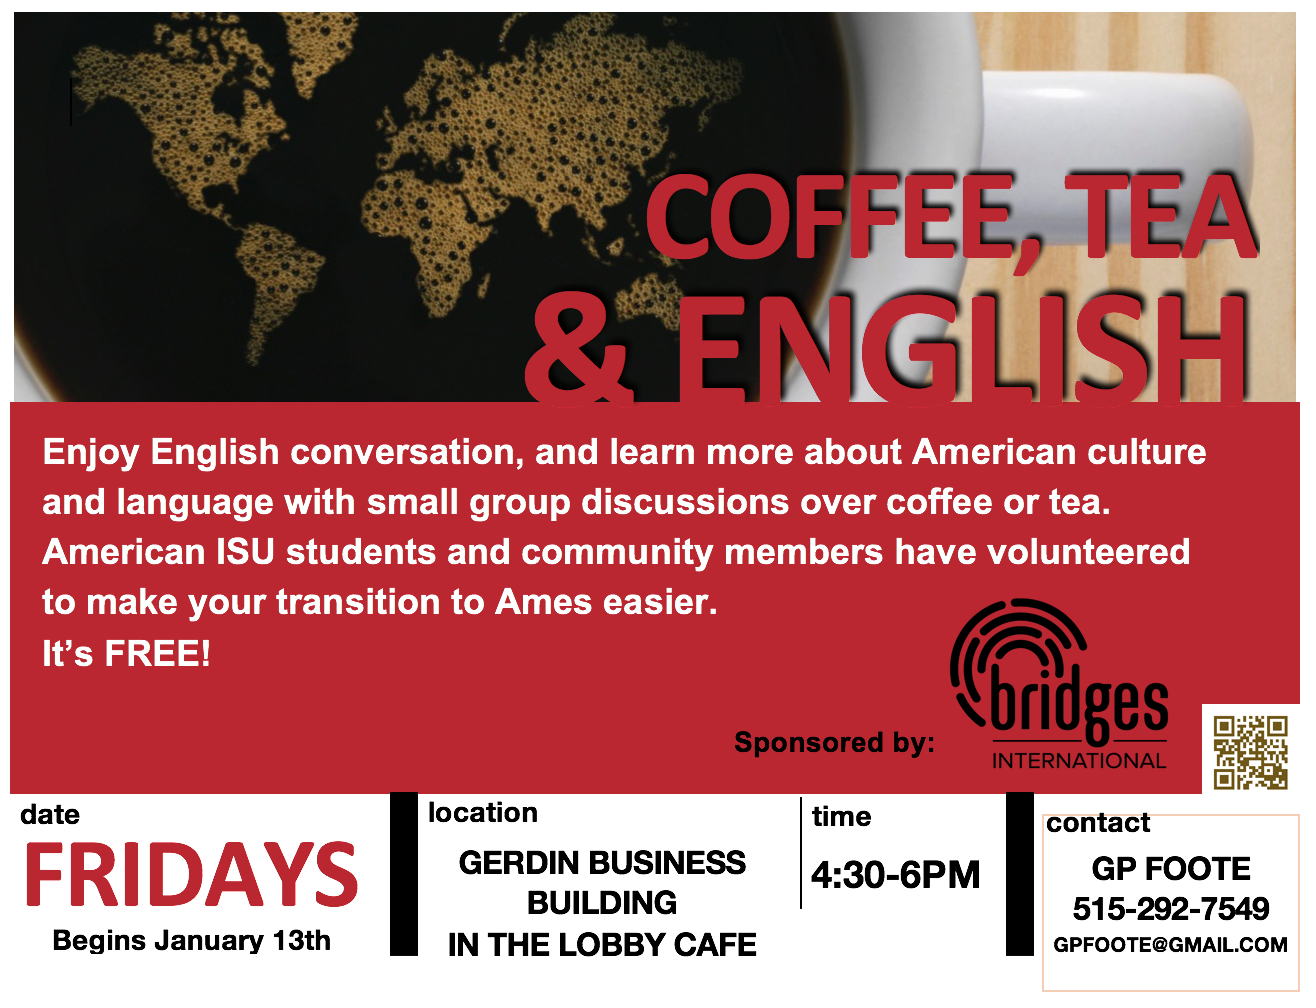 Coffee, Tea, & English